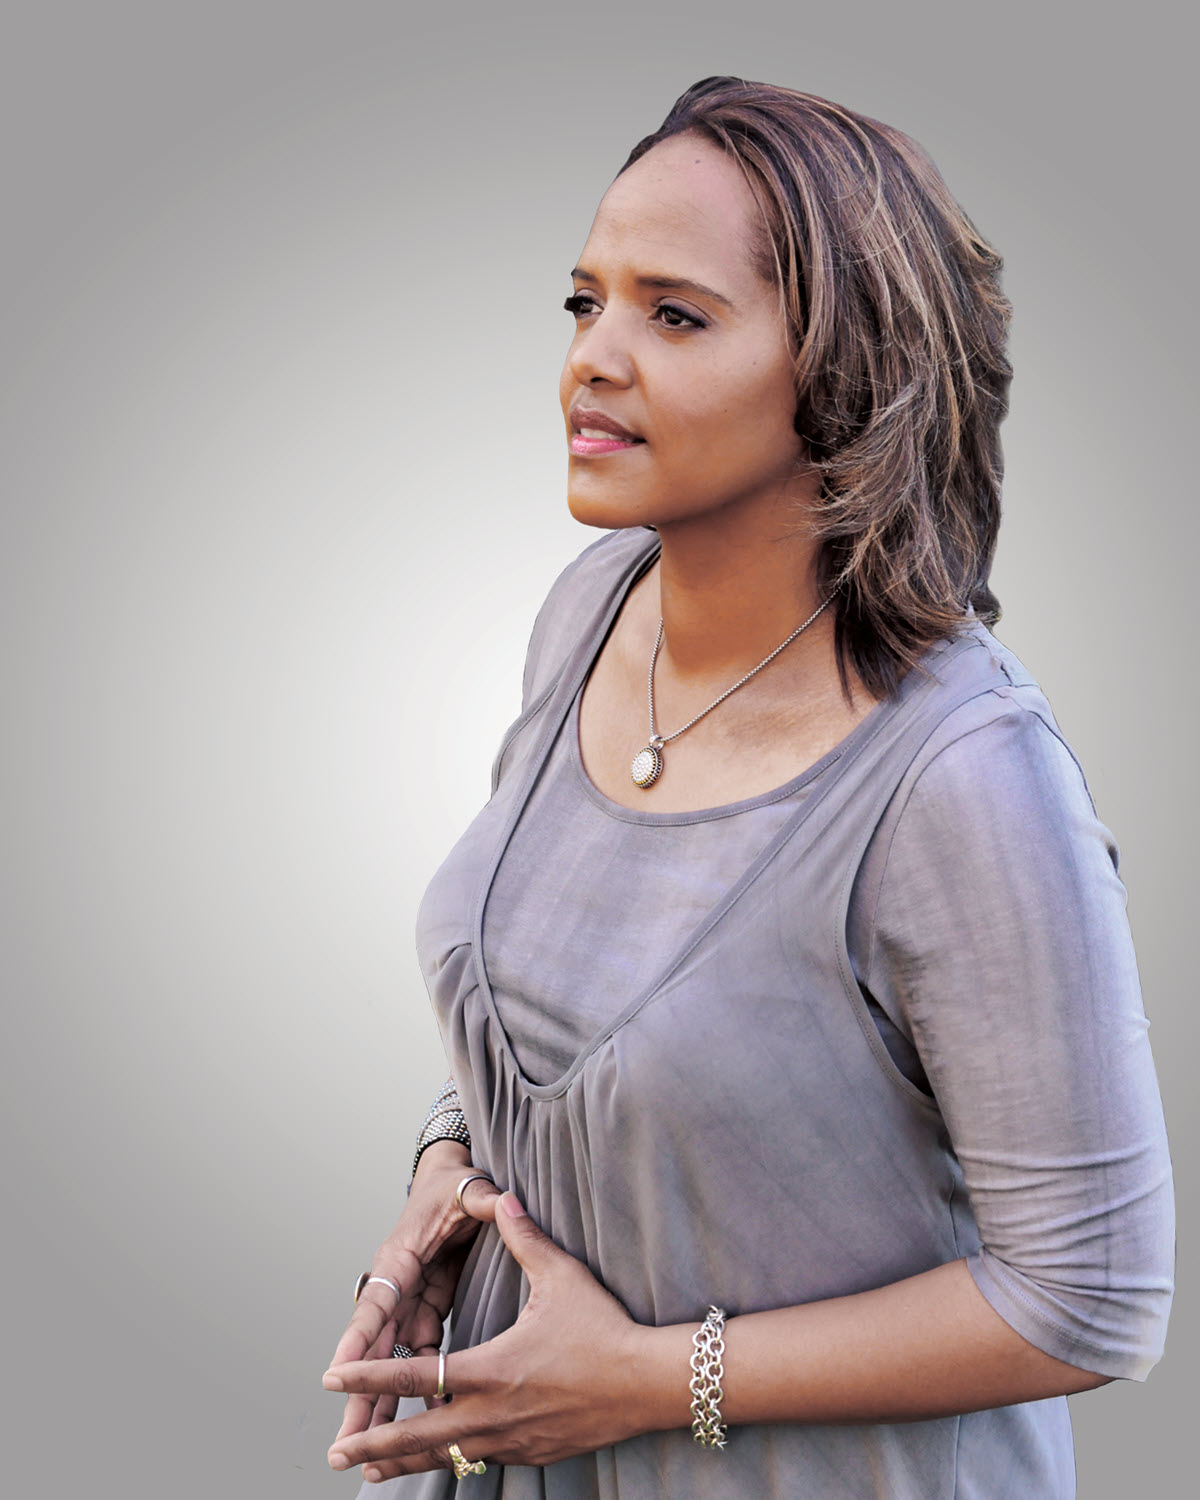 Beautiful woman seen in 3/4 profile. She has shoulder length ash brown hair, light brown skin. She is wearing a short sleeved sweater set and wearing silver necklace and rings.